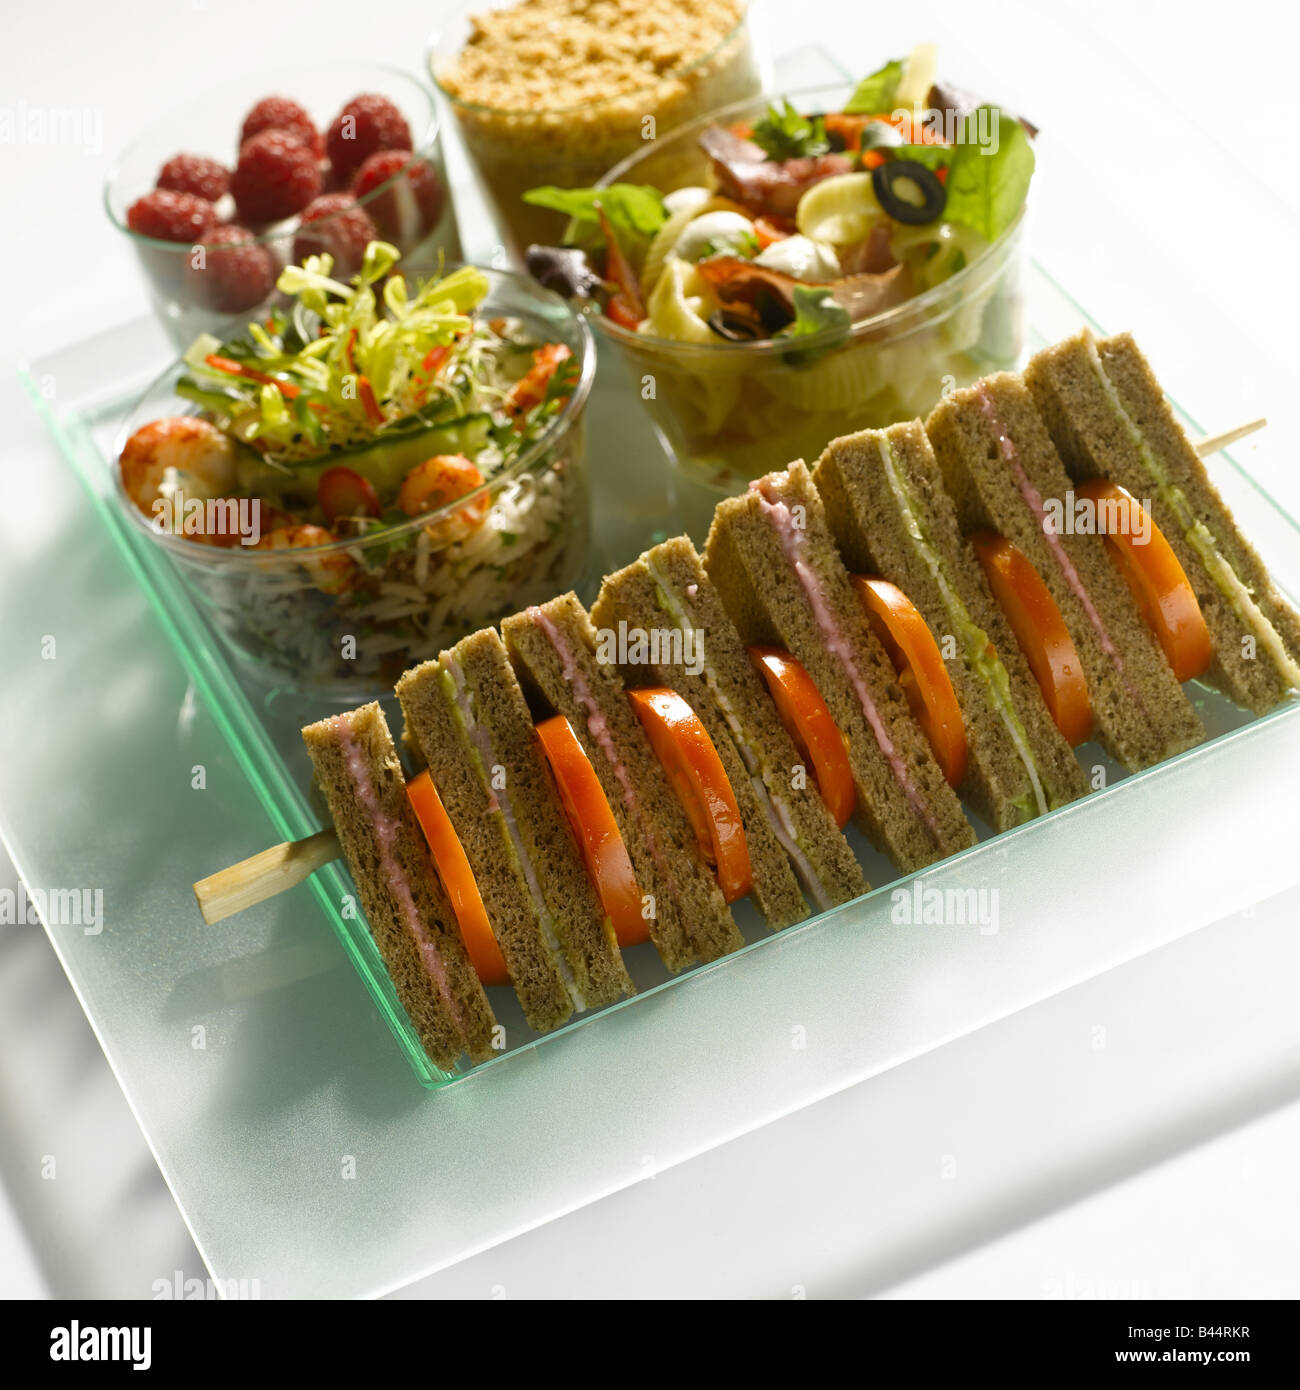 Mixed meal on a tray - Stock Image